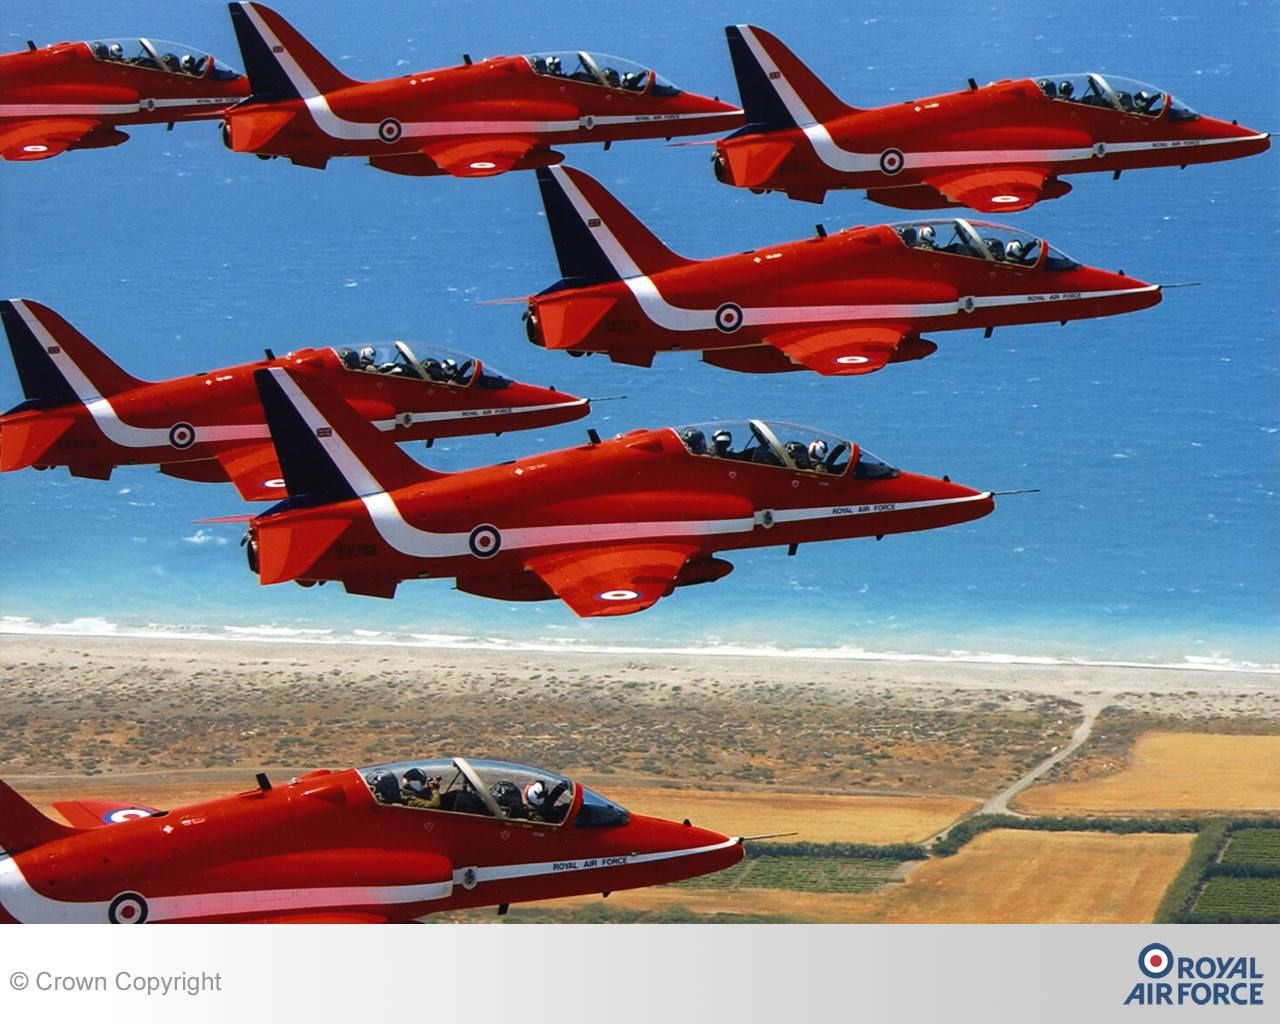 The Red Arrows ...